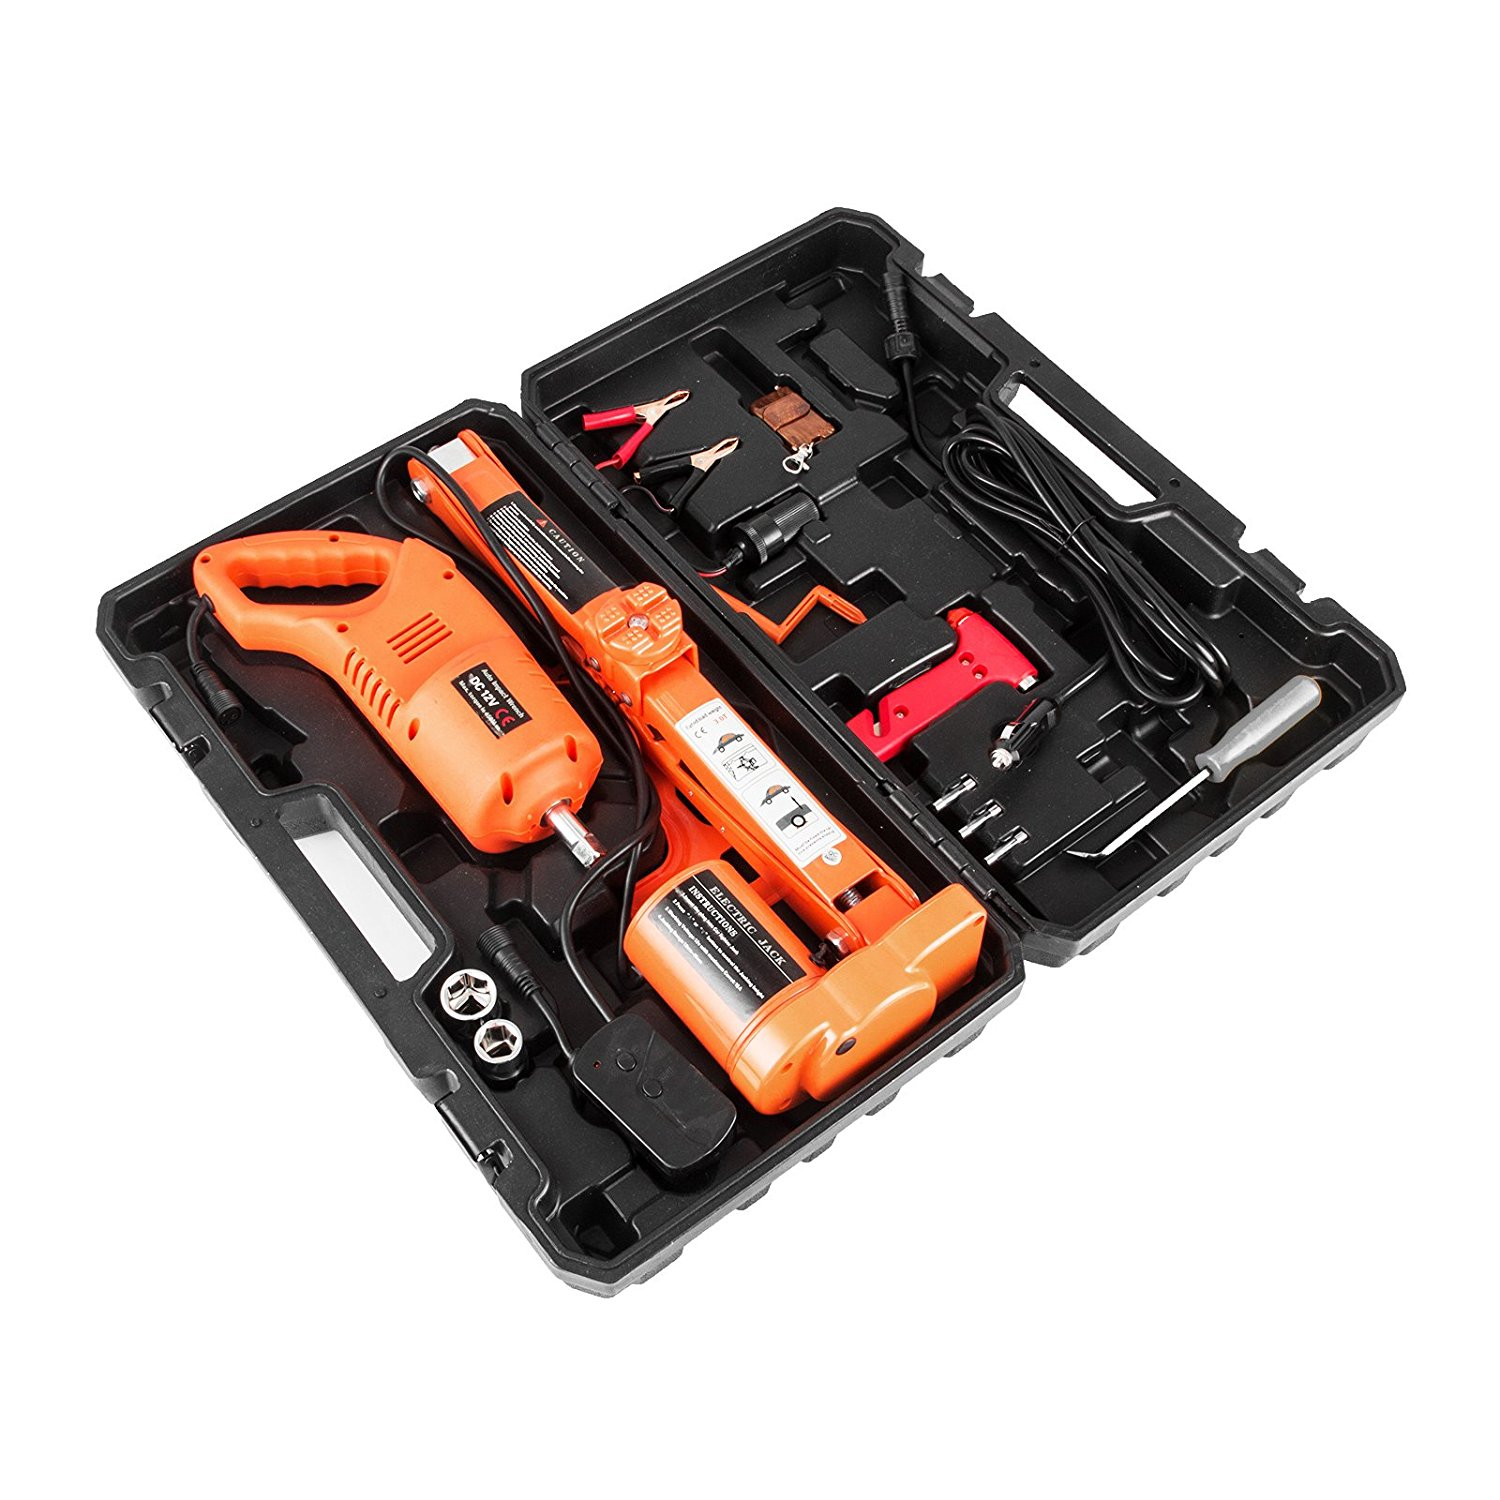 BestEquip Electric Car Jack 3 Ton 6600 LB Electric Scissor Jack 12V DC with Electric Impact Wrench Car Repair Tool for Sedans and Trucks